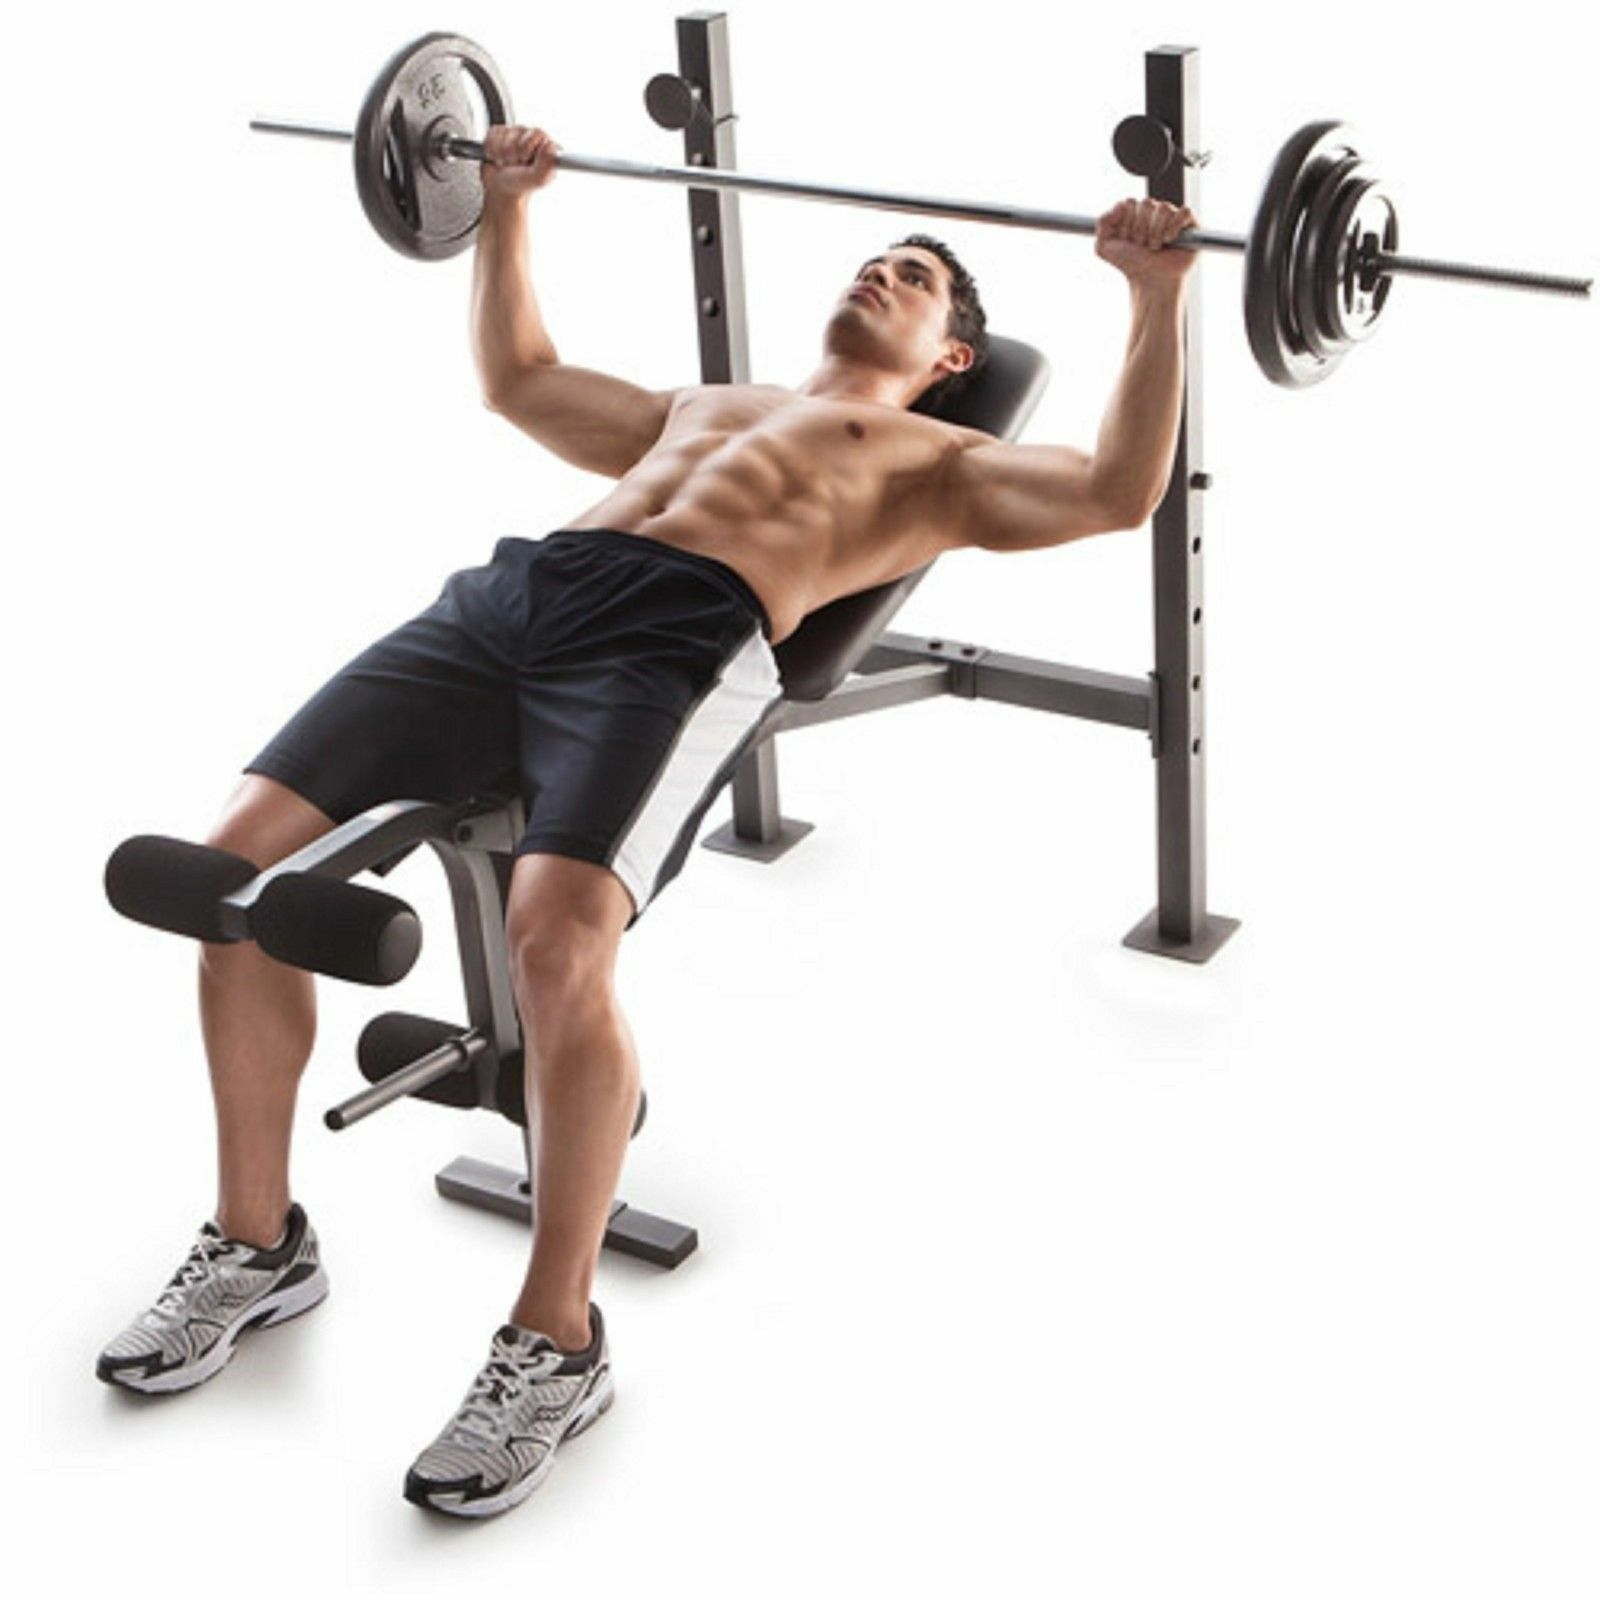 Image result for barbell and plate set